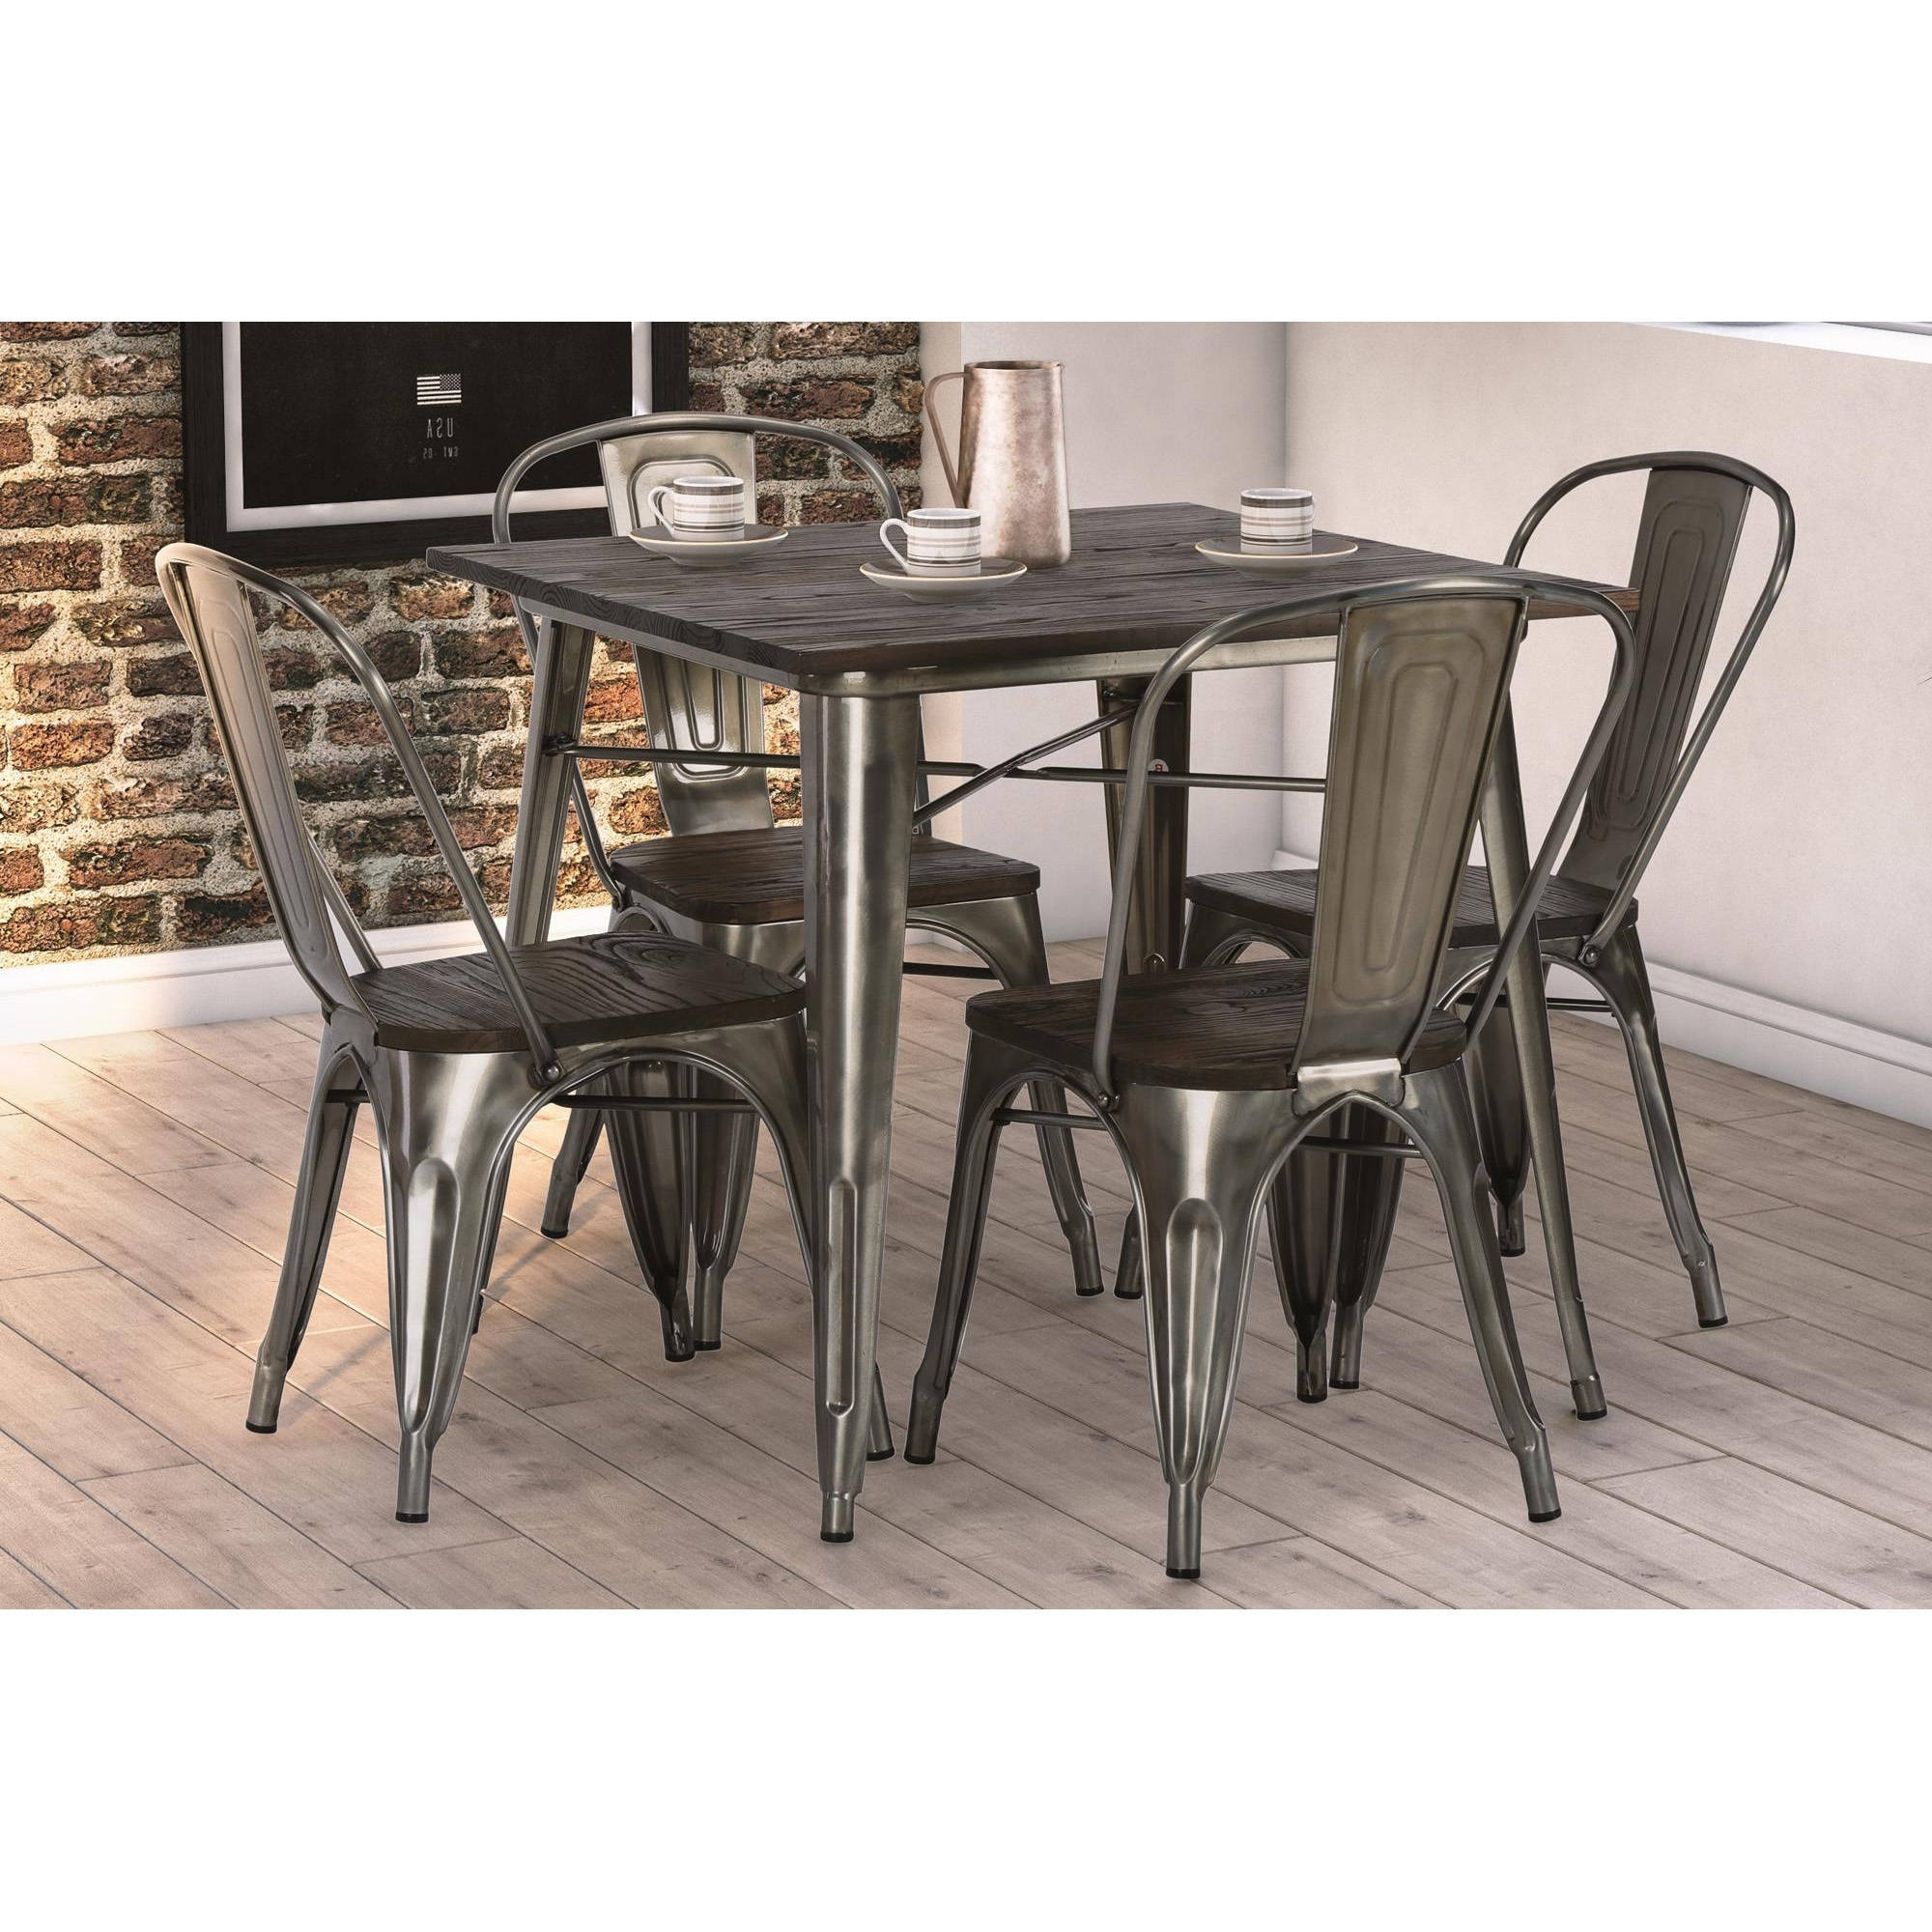 Iron And Wood Dining Tables Intended For Fashionable Dhp Fusion Dining Table, Square, Antique Gun Metal/wood – Walmart (Gallery 13 of 25)